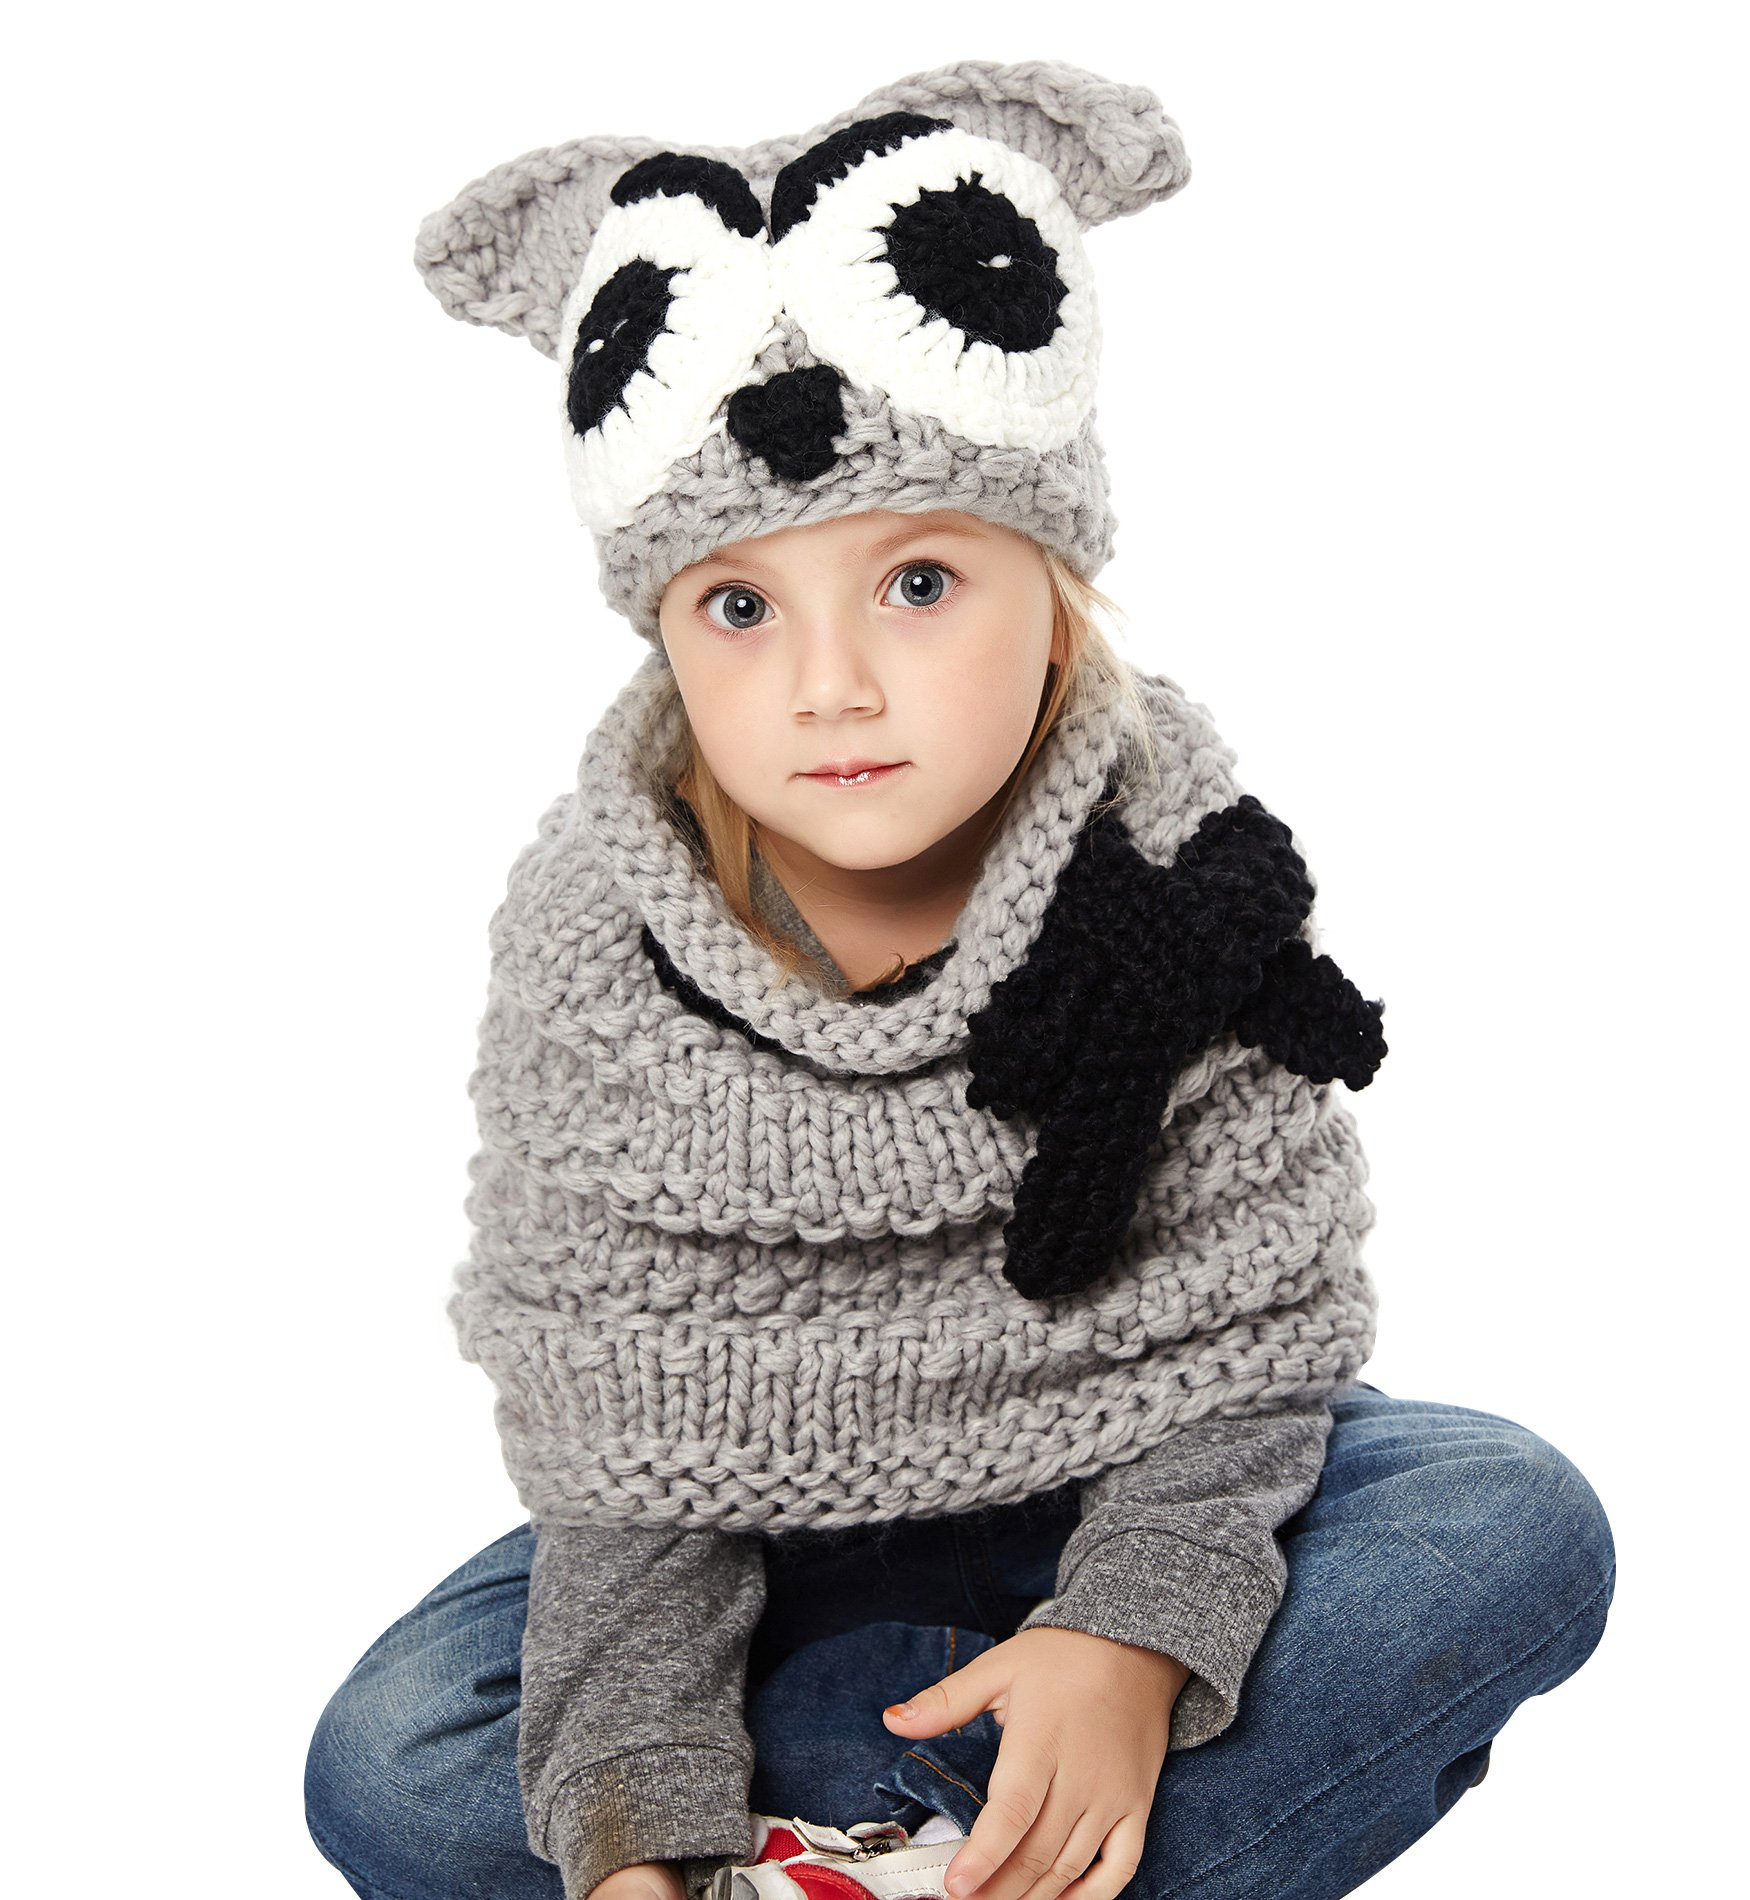 Sumolux Girls Kids Warm Owl Hats and Scarf Set Knitted Coif Hood/Shawl Beanies for Winter by Sumolux (Image #2)